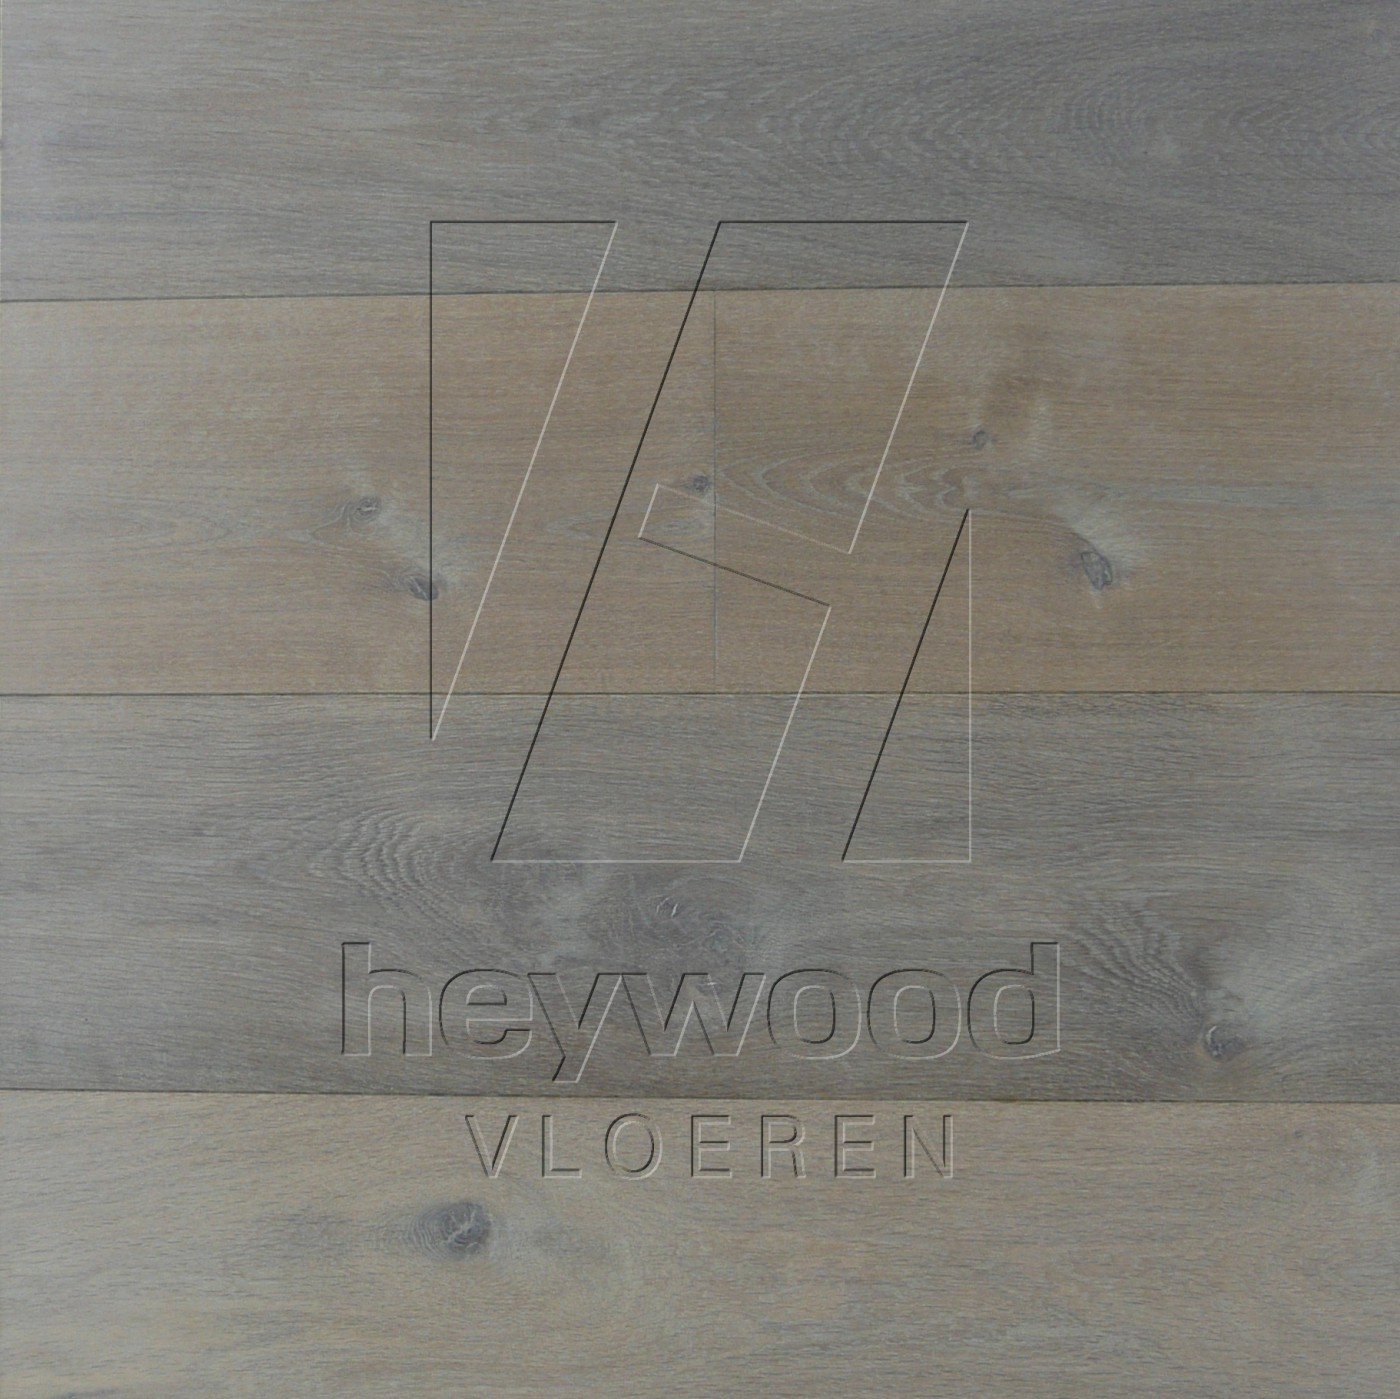 Brisbane in European Oak Character of Bespoke Wooden Floors